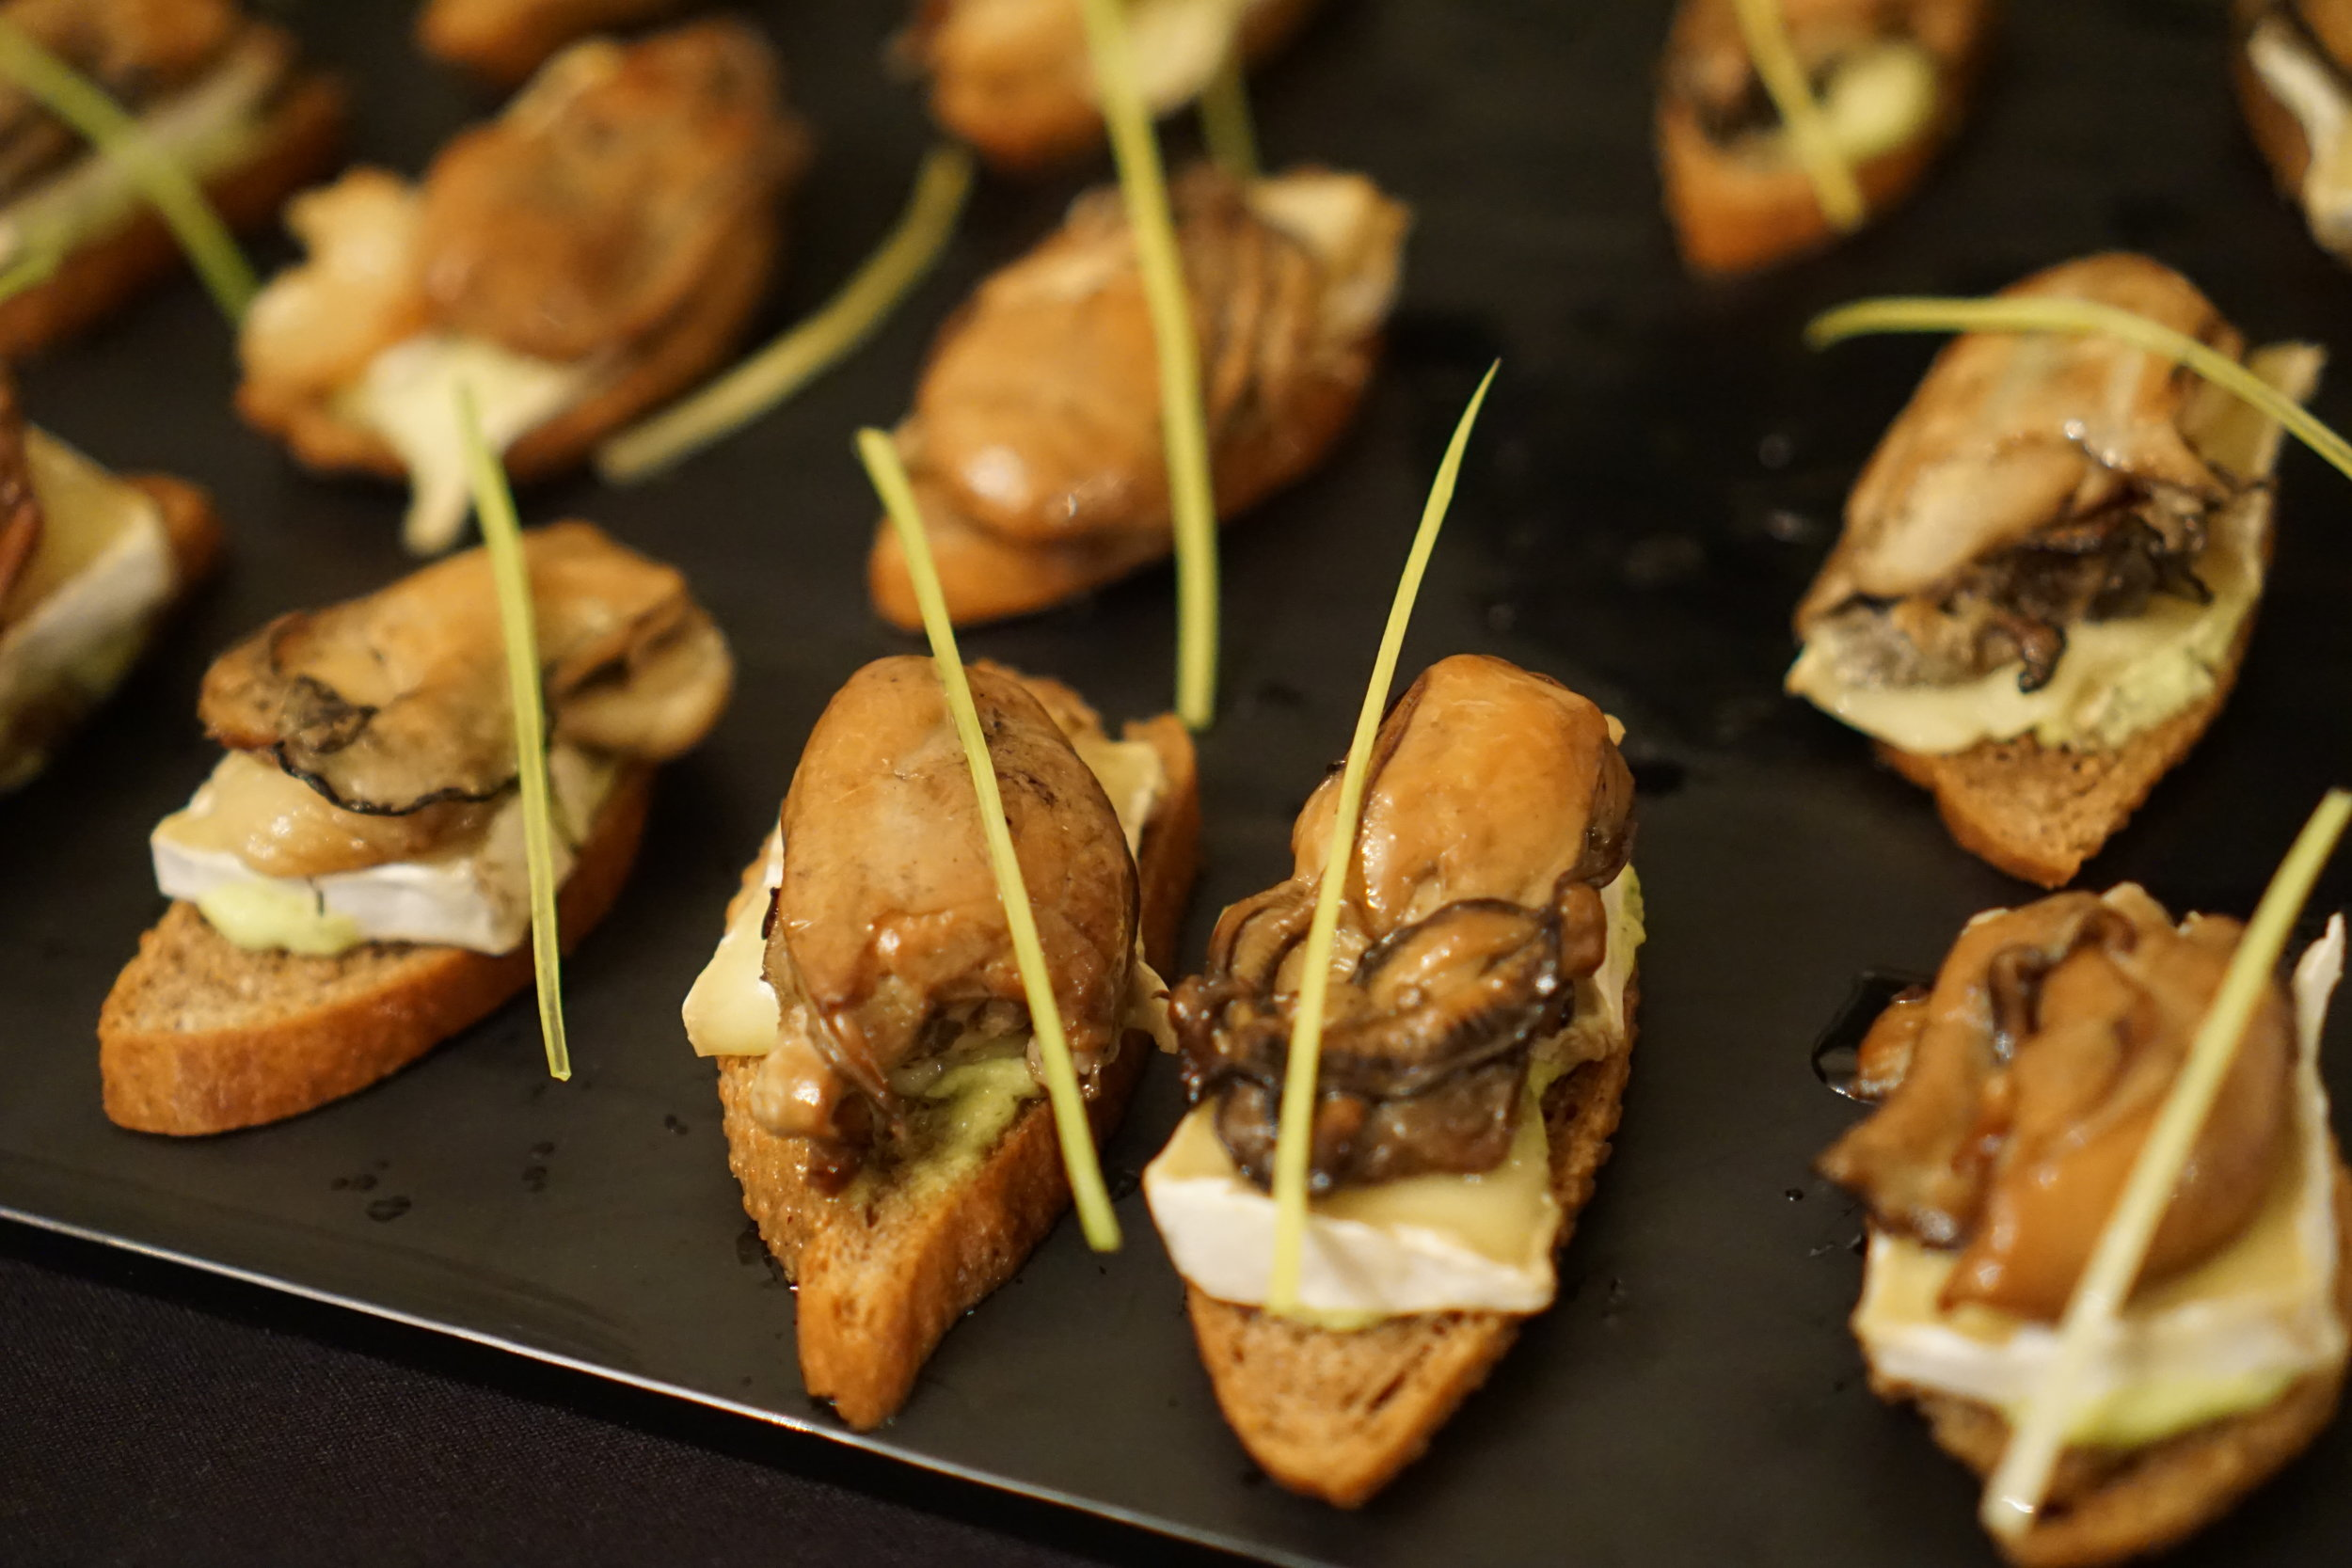 Smoked oyster and brie crostini made with  Sonoran Gold Wheat (Chris Lozier photo)